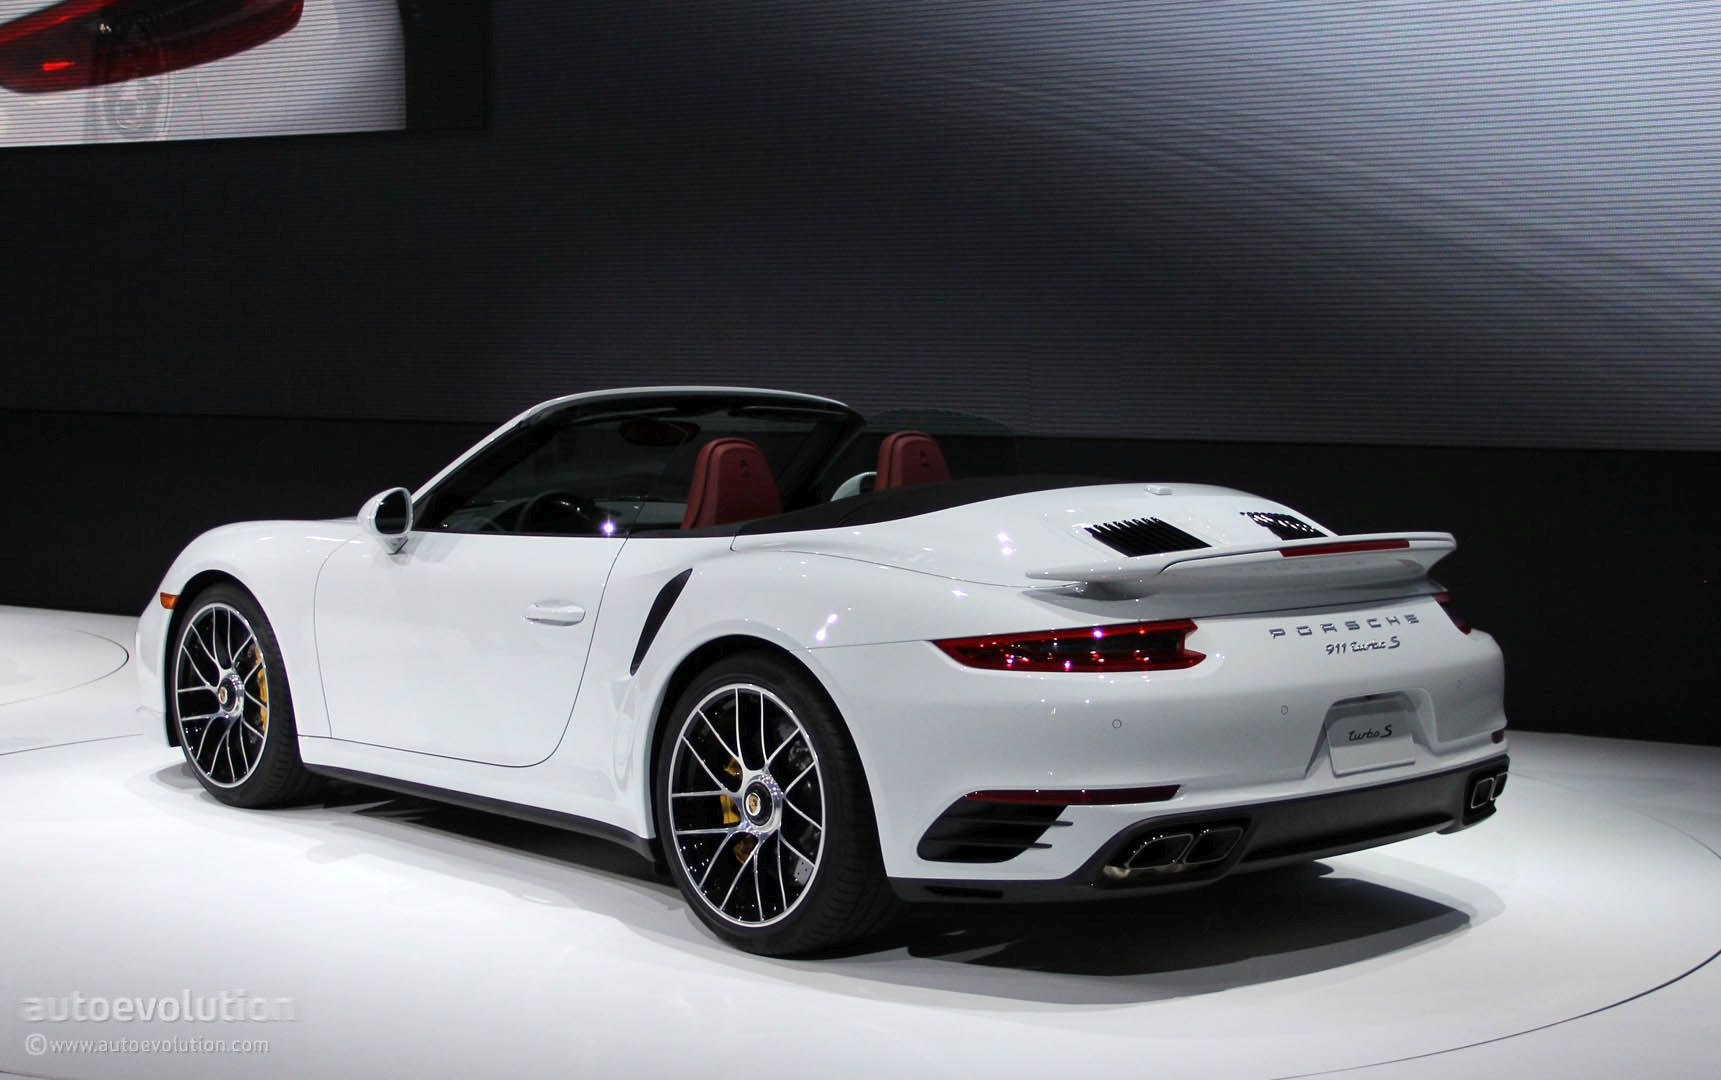 Porsche 911 Turbo On Snow Tracks Rendered As The All